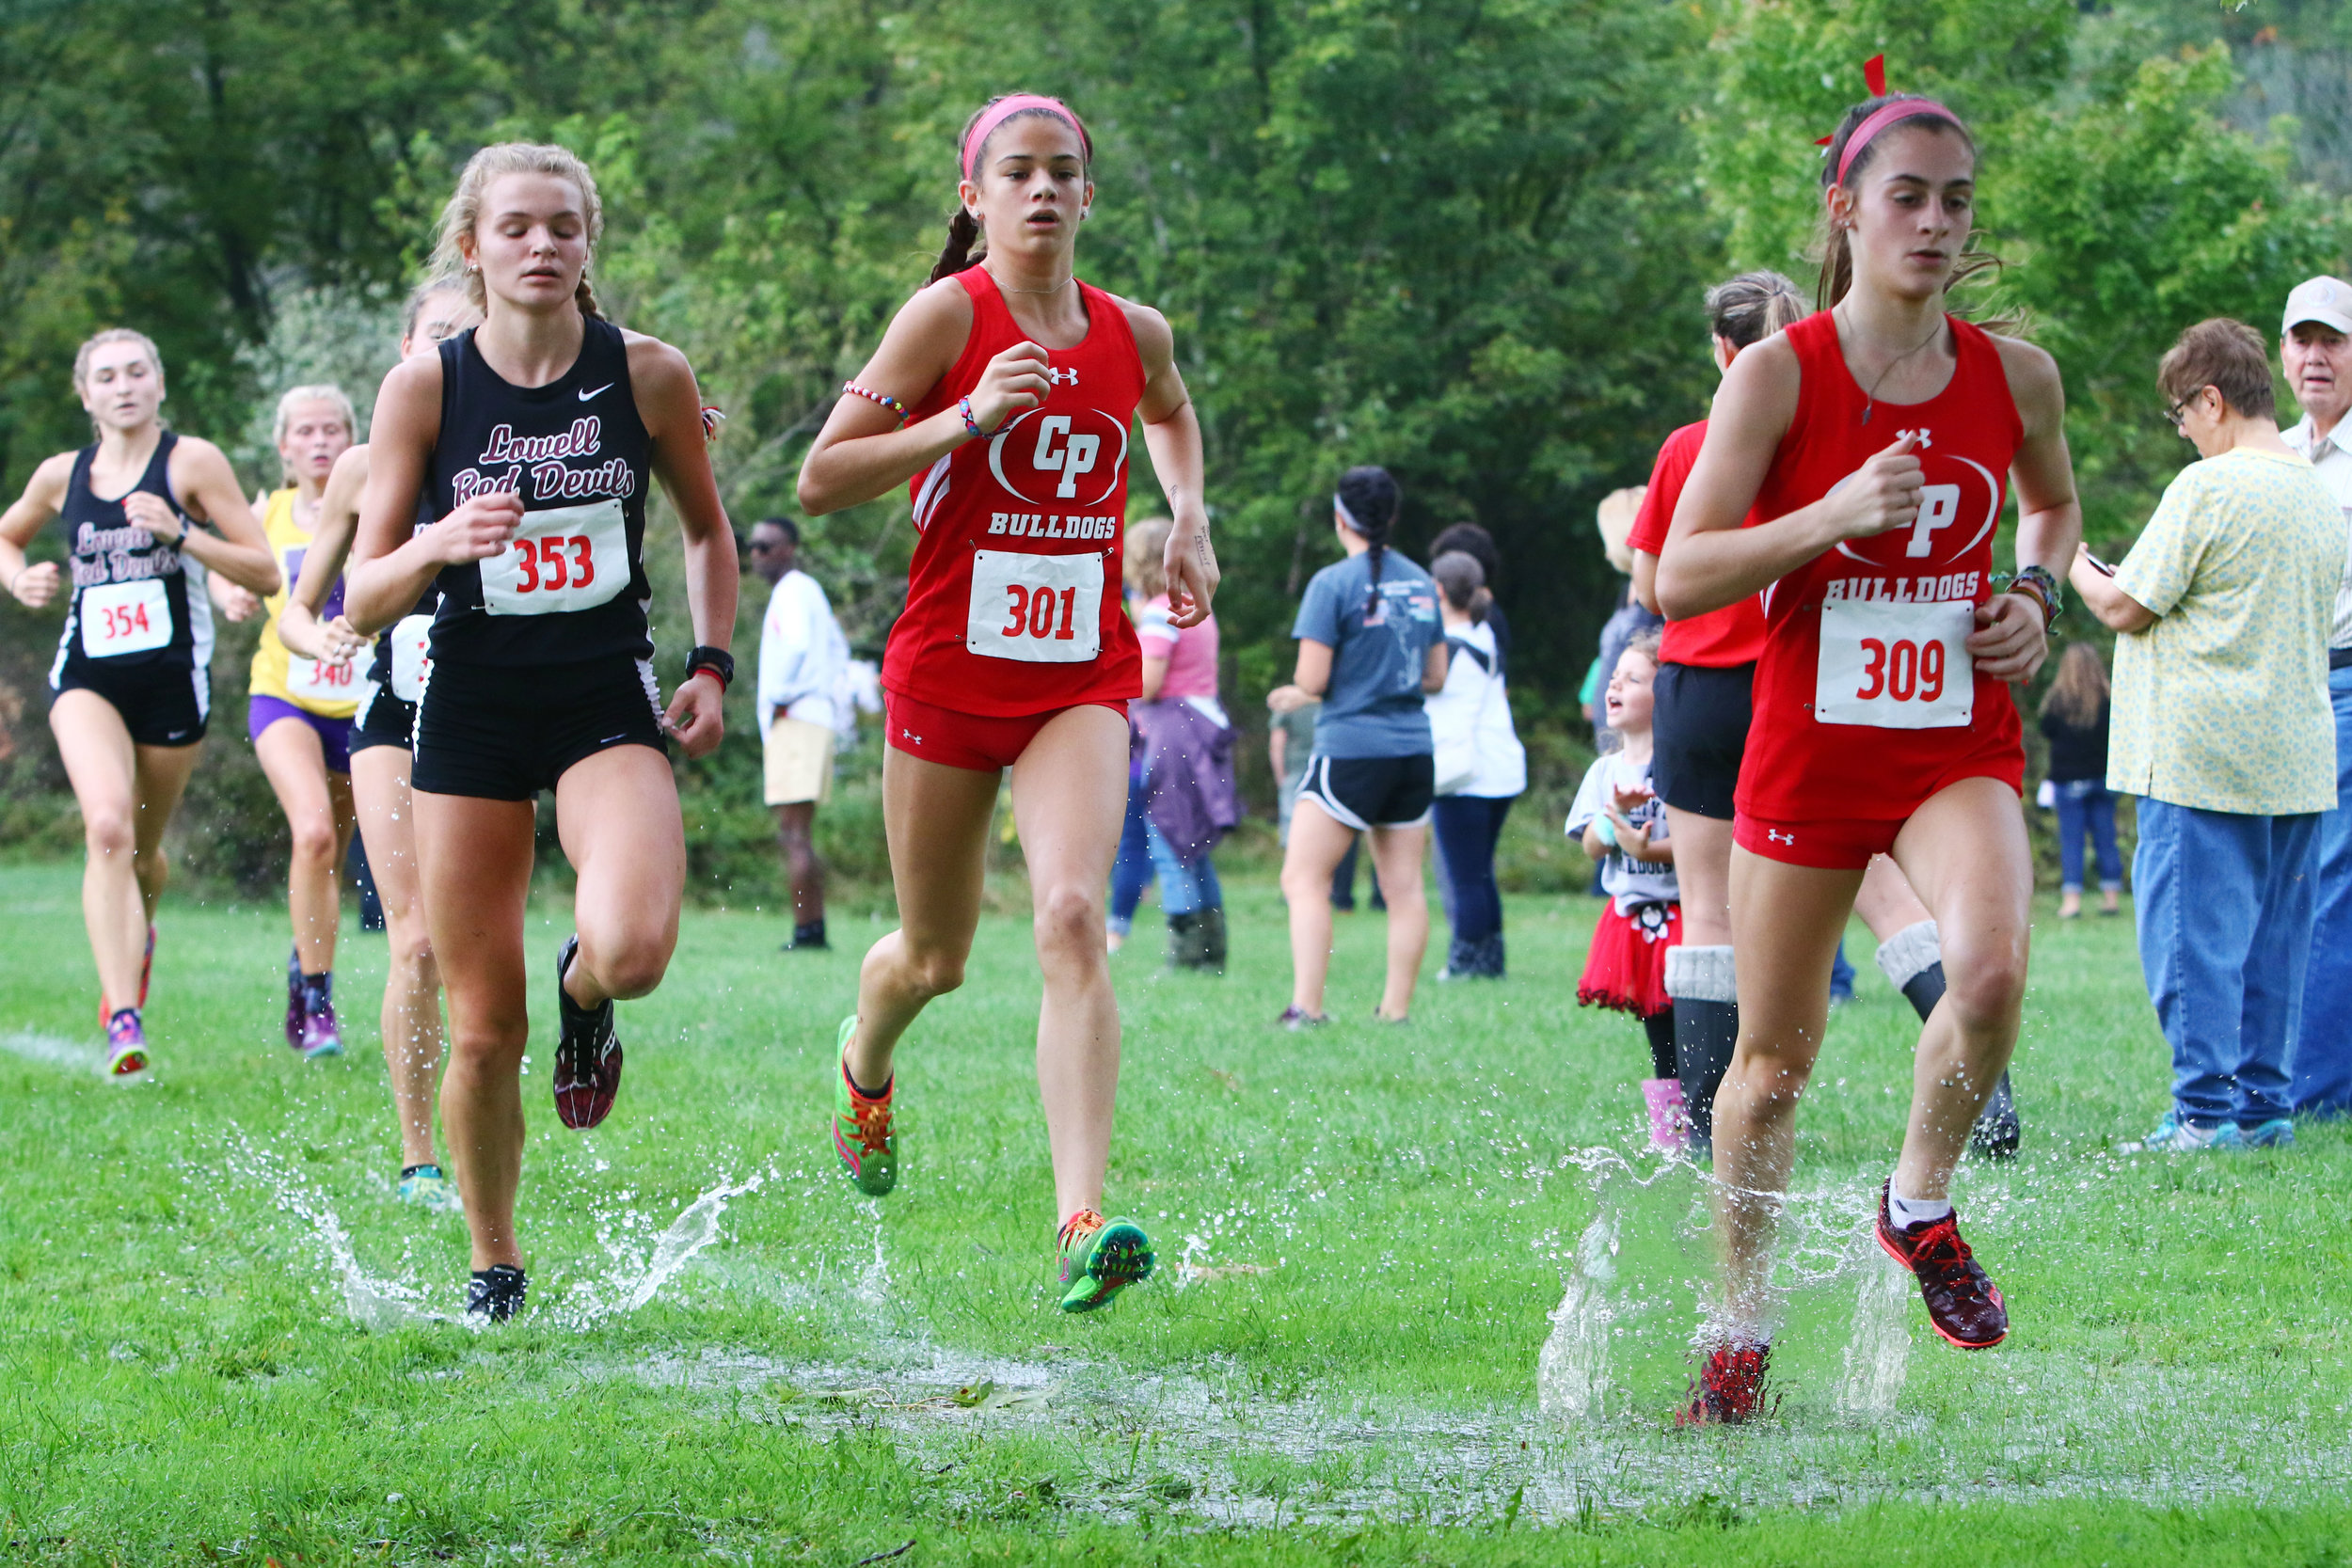 Girls cross country runners, including, from right, Crown Point's Maddie Russin, Jaelyn Burgos and Lowell's Karina James, slosh through the course at Lemon Lake County Park in Crown Point.